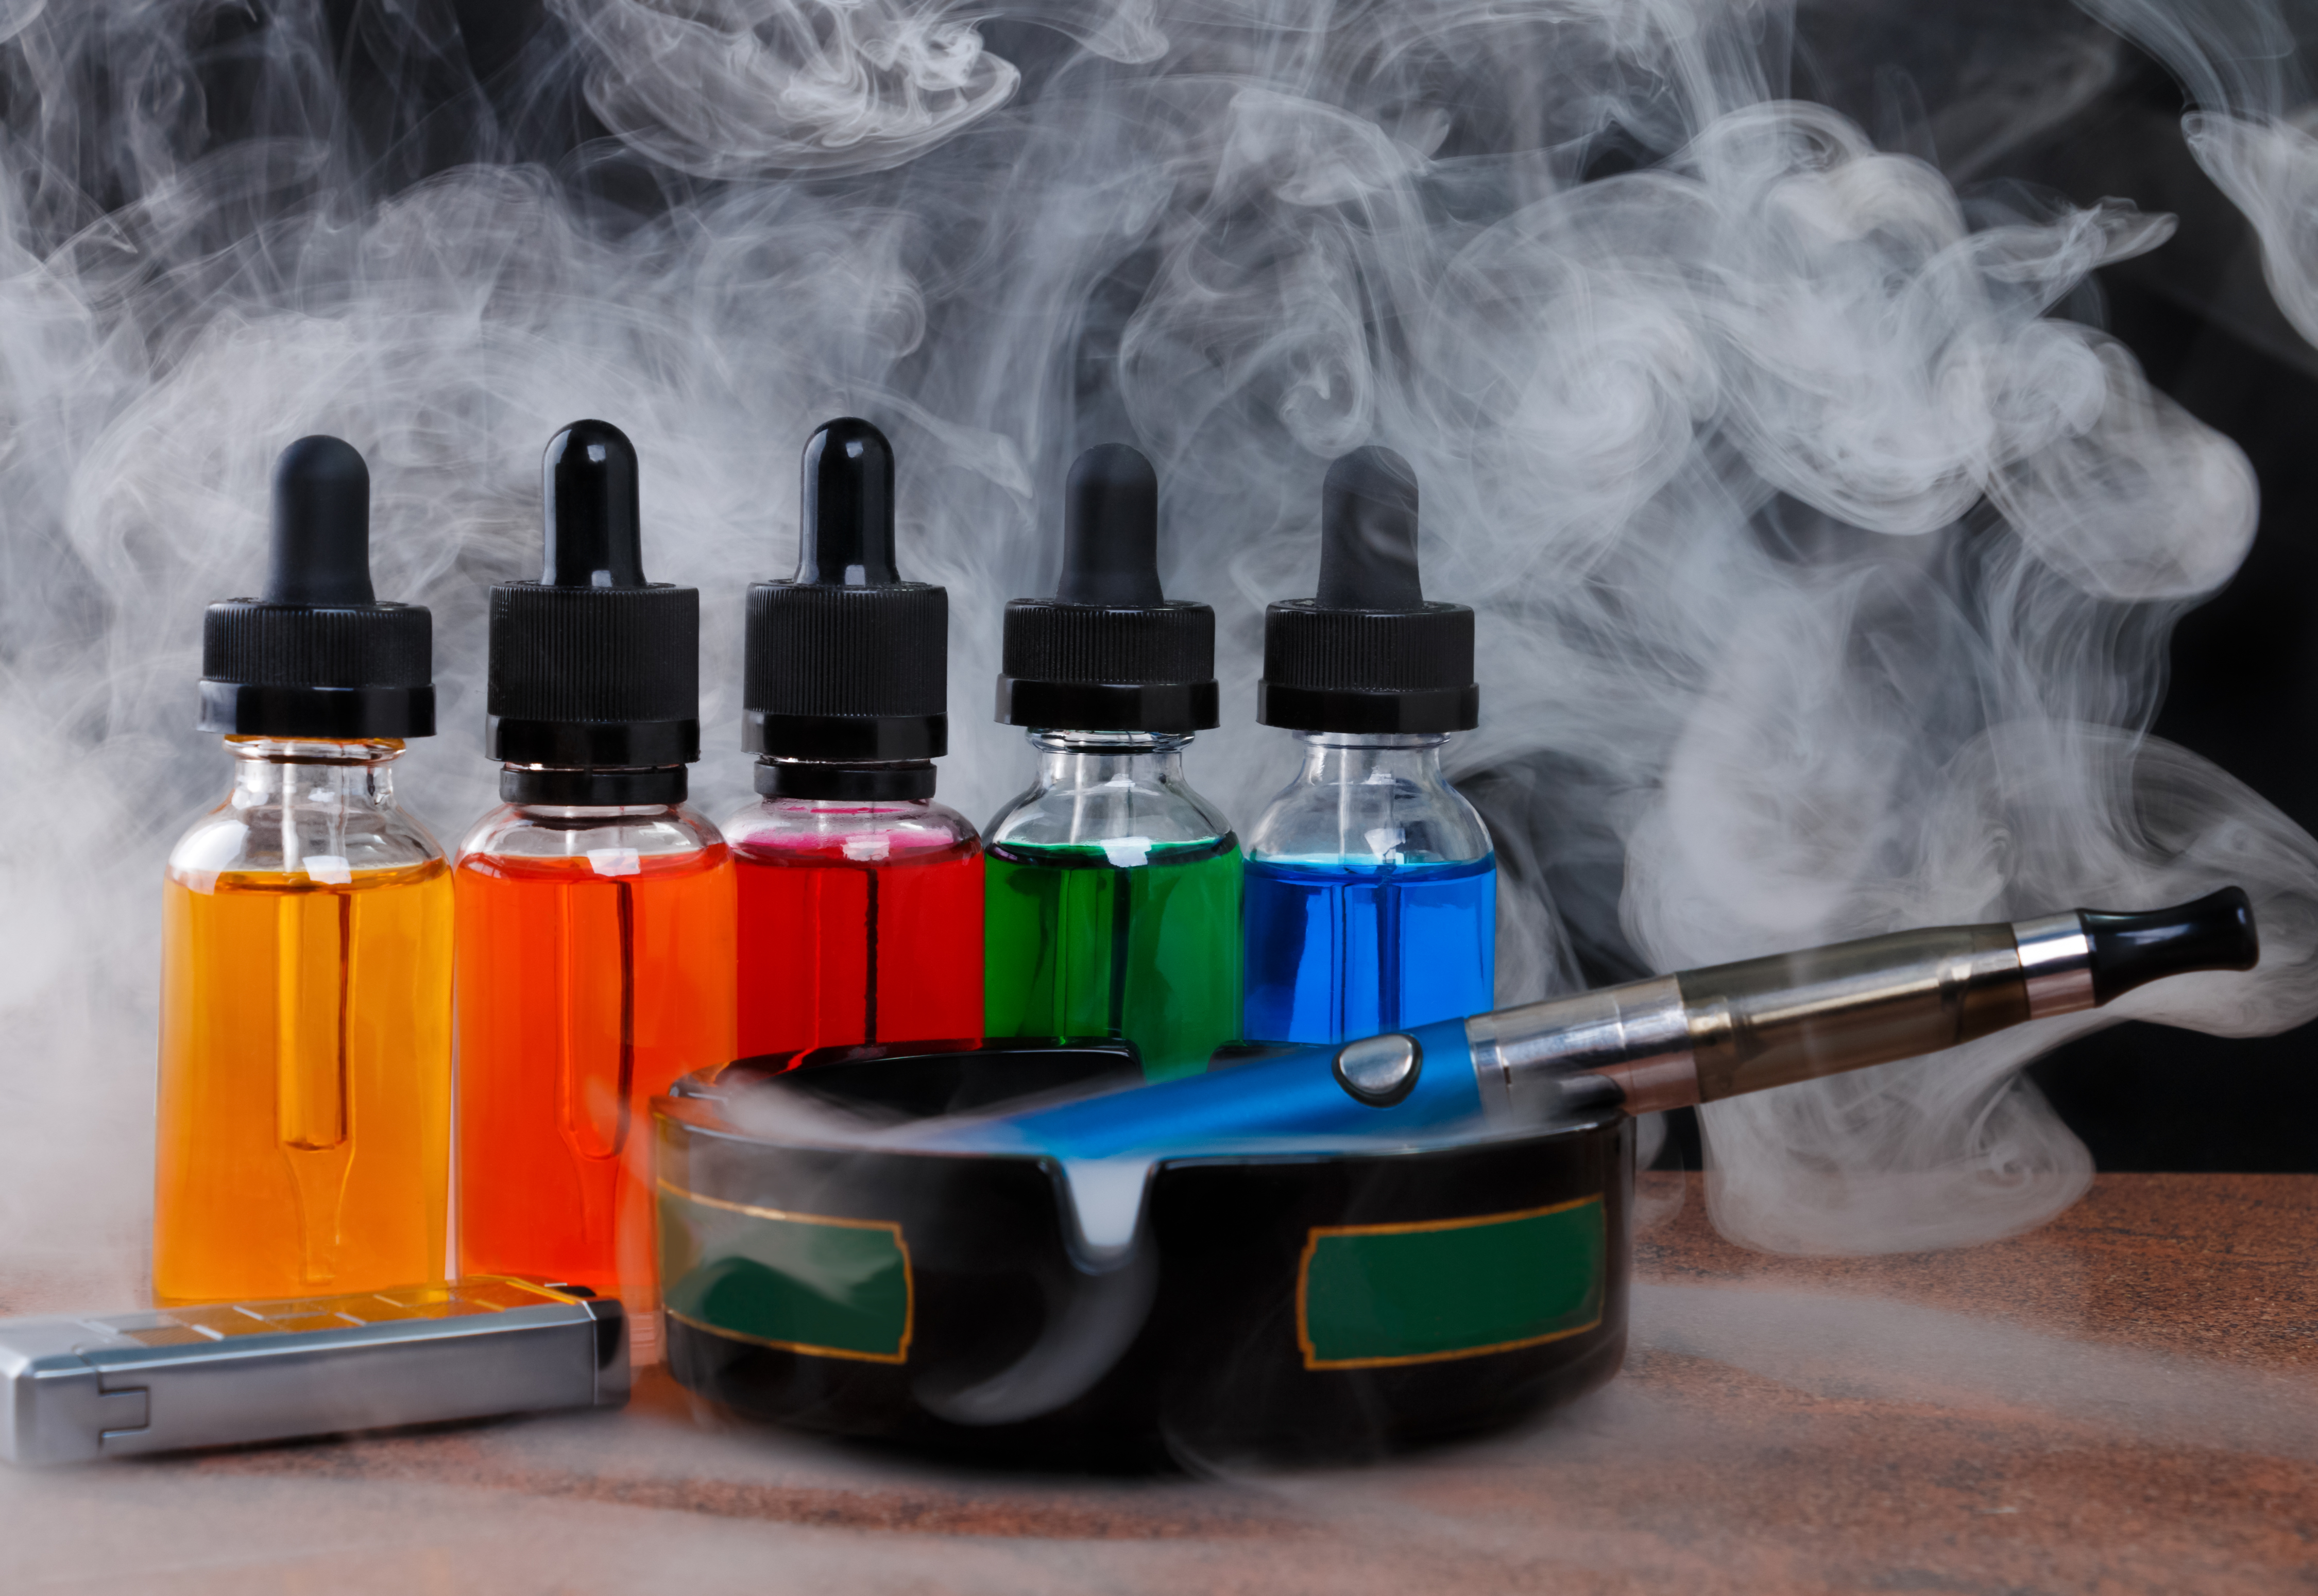 A few bottles of flavored liquid tobacco with an ashtray